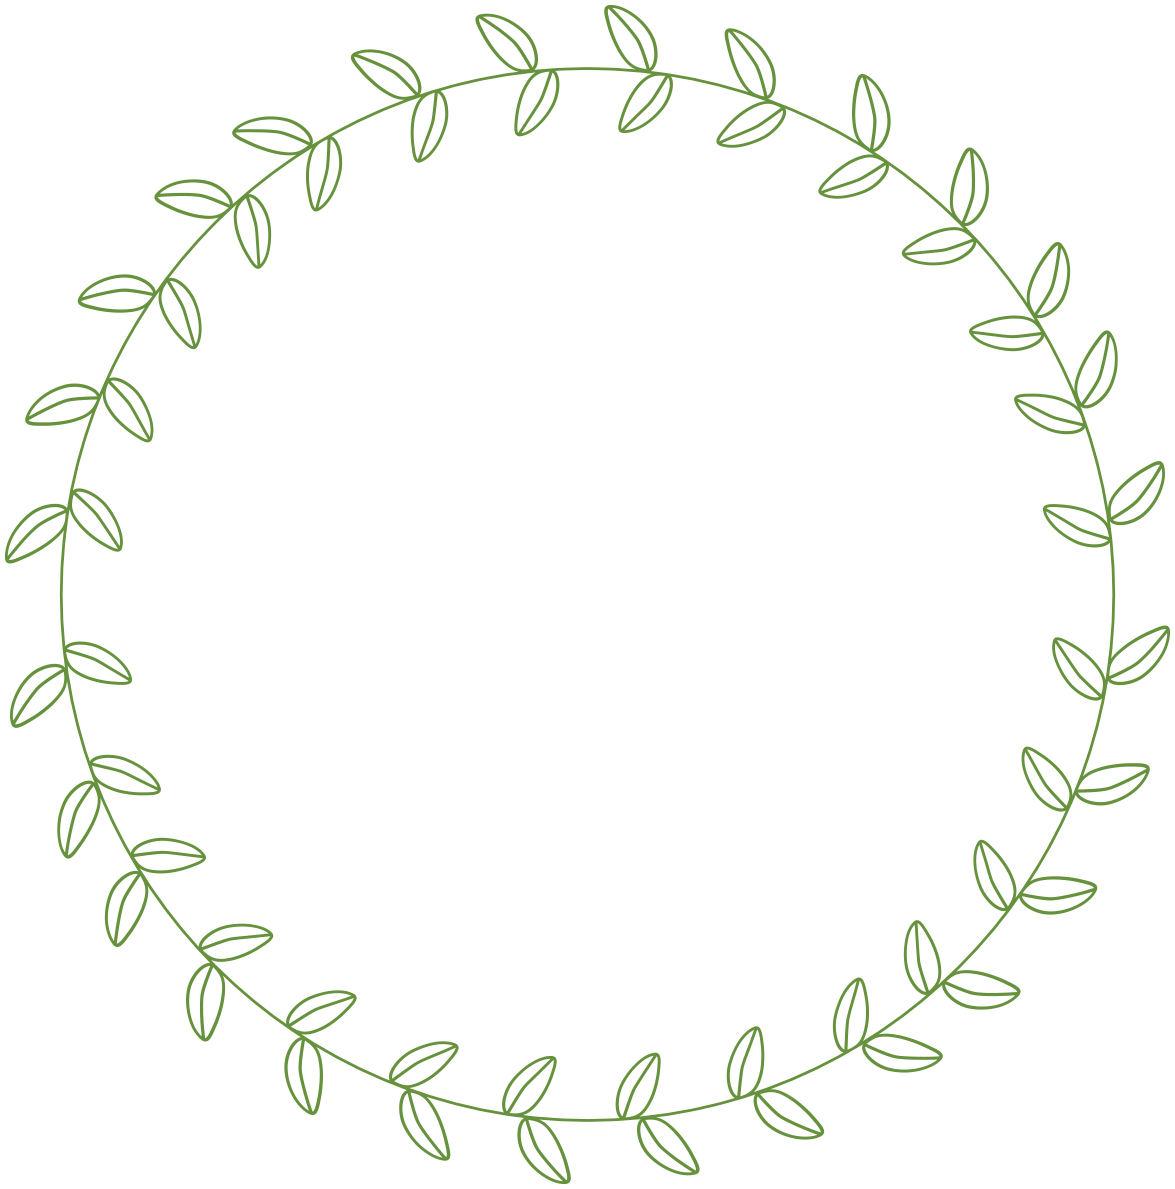 Circle leaf google search. Square clipart beautiful border